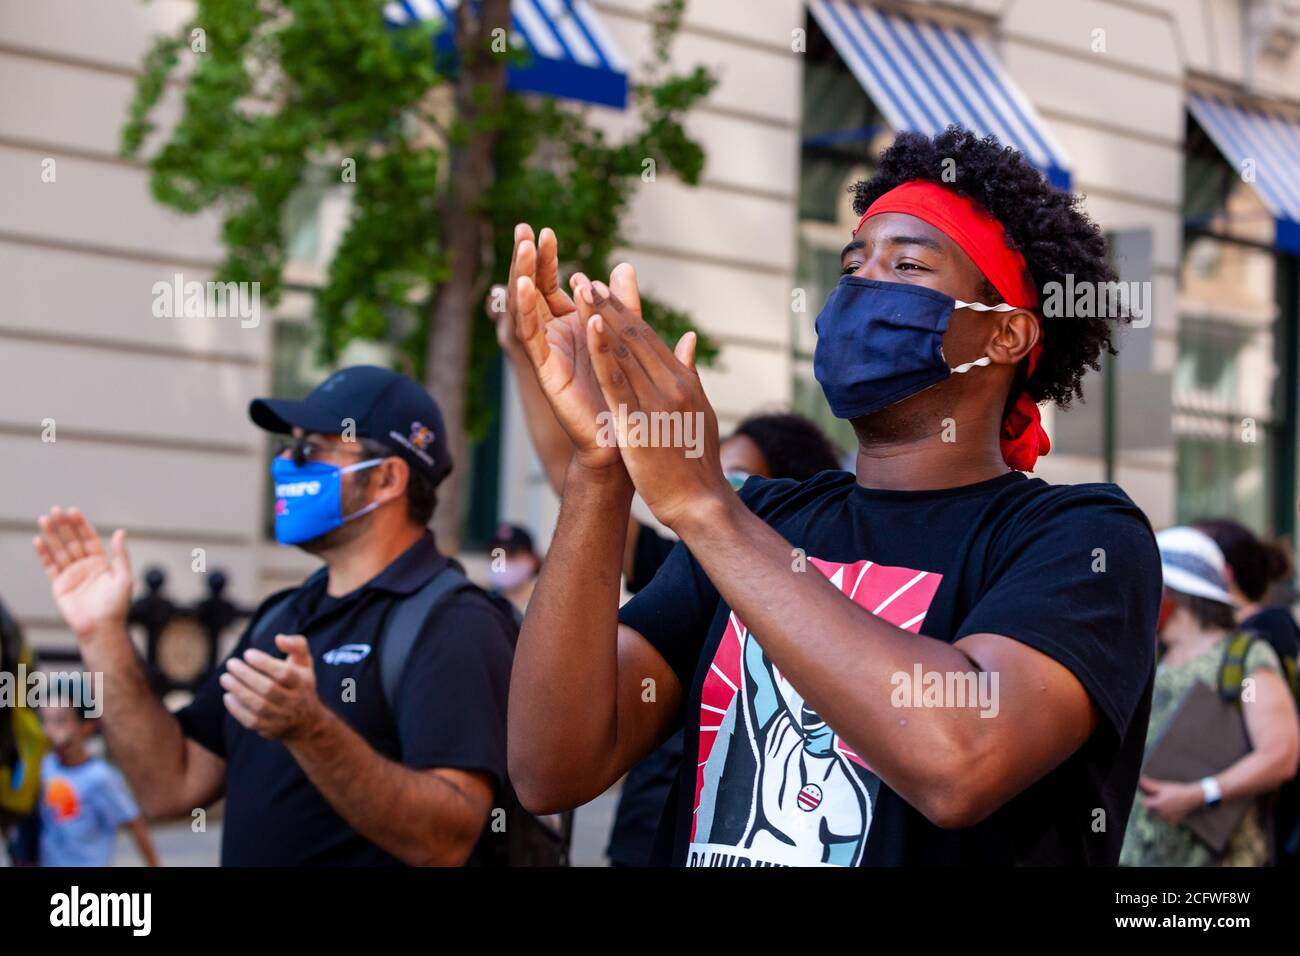 Washington, DC, USA, September 7, 2020. Pictured: Protesters clap and keep the beat as they sing during the Let Freedom Sing March en route to Freedom Plaza. Let Freedom Sing was a community-building protest and voter registration event by the Freedom Day Foundation and Head Count. Credit: Allison C Bailey Credit: Allison Bailey/Alamy Live News Stock Photo